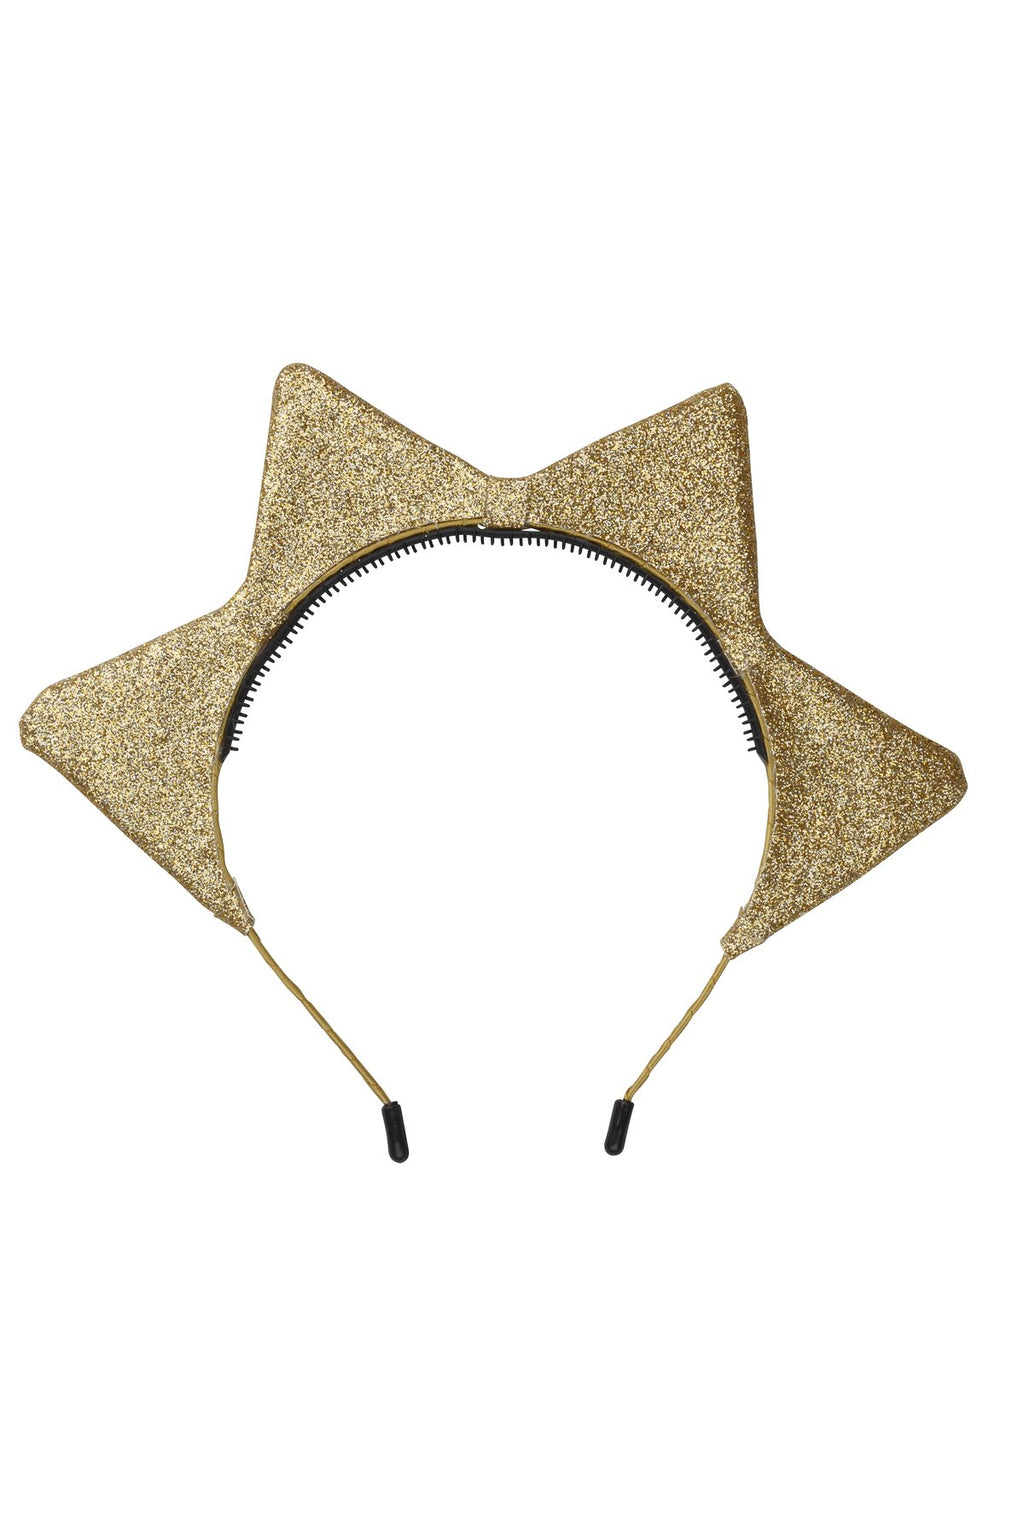 Rising Sun Headband - Gold Glitter - PROJECT 6, modest fashion